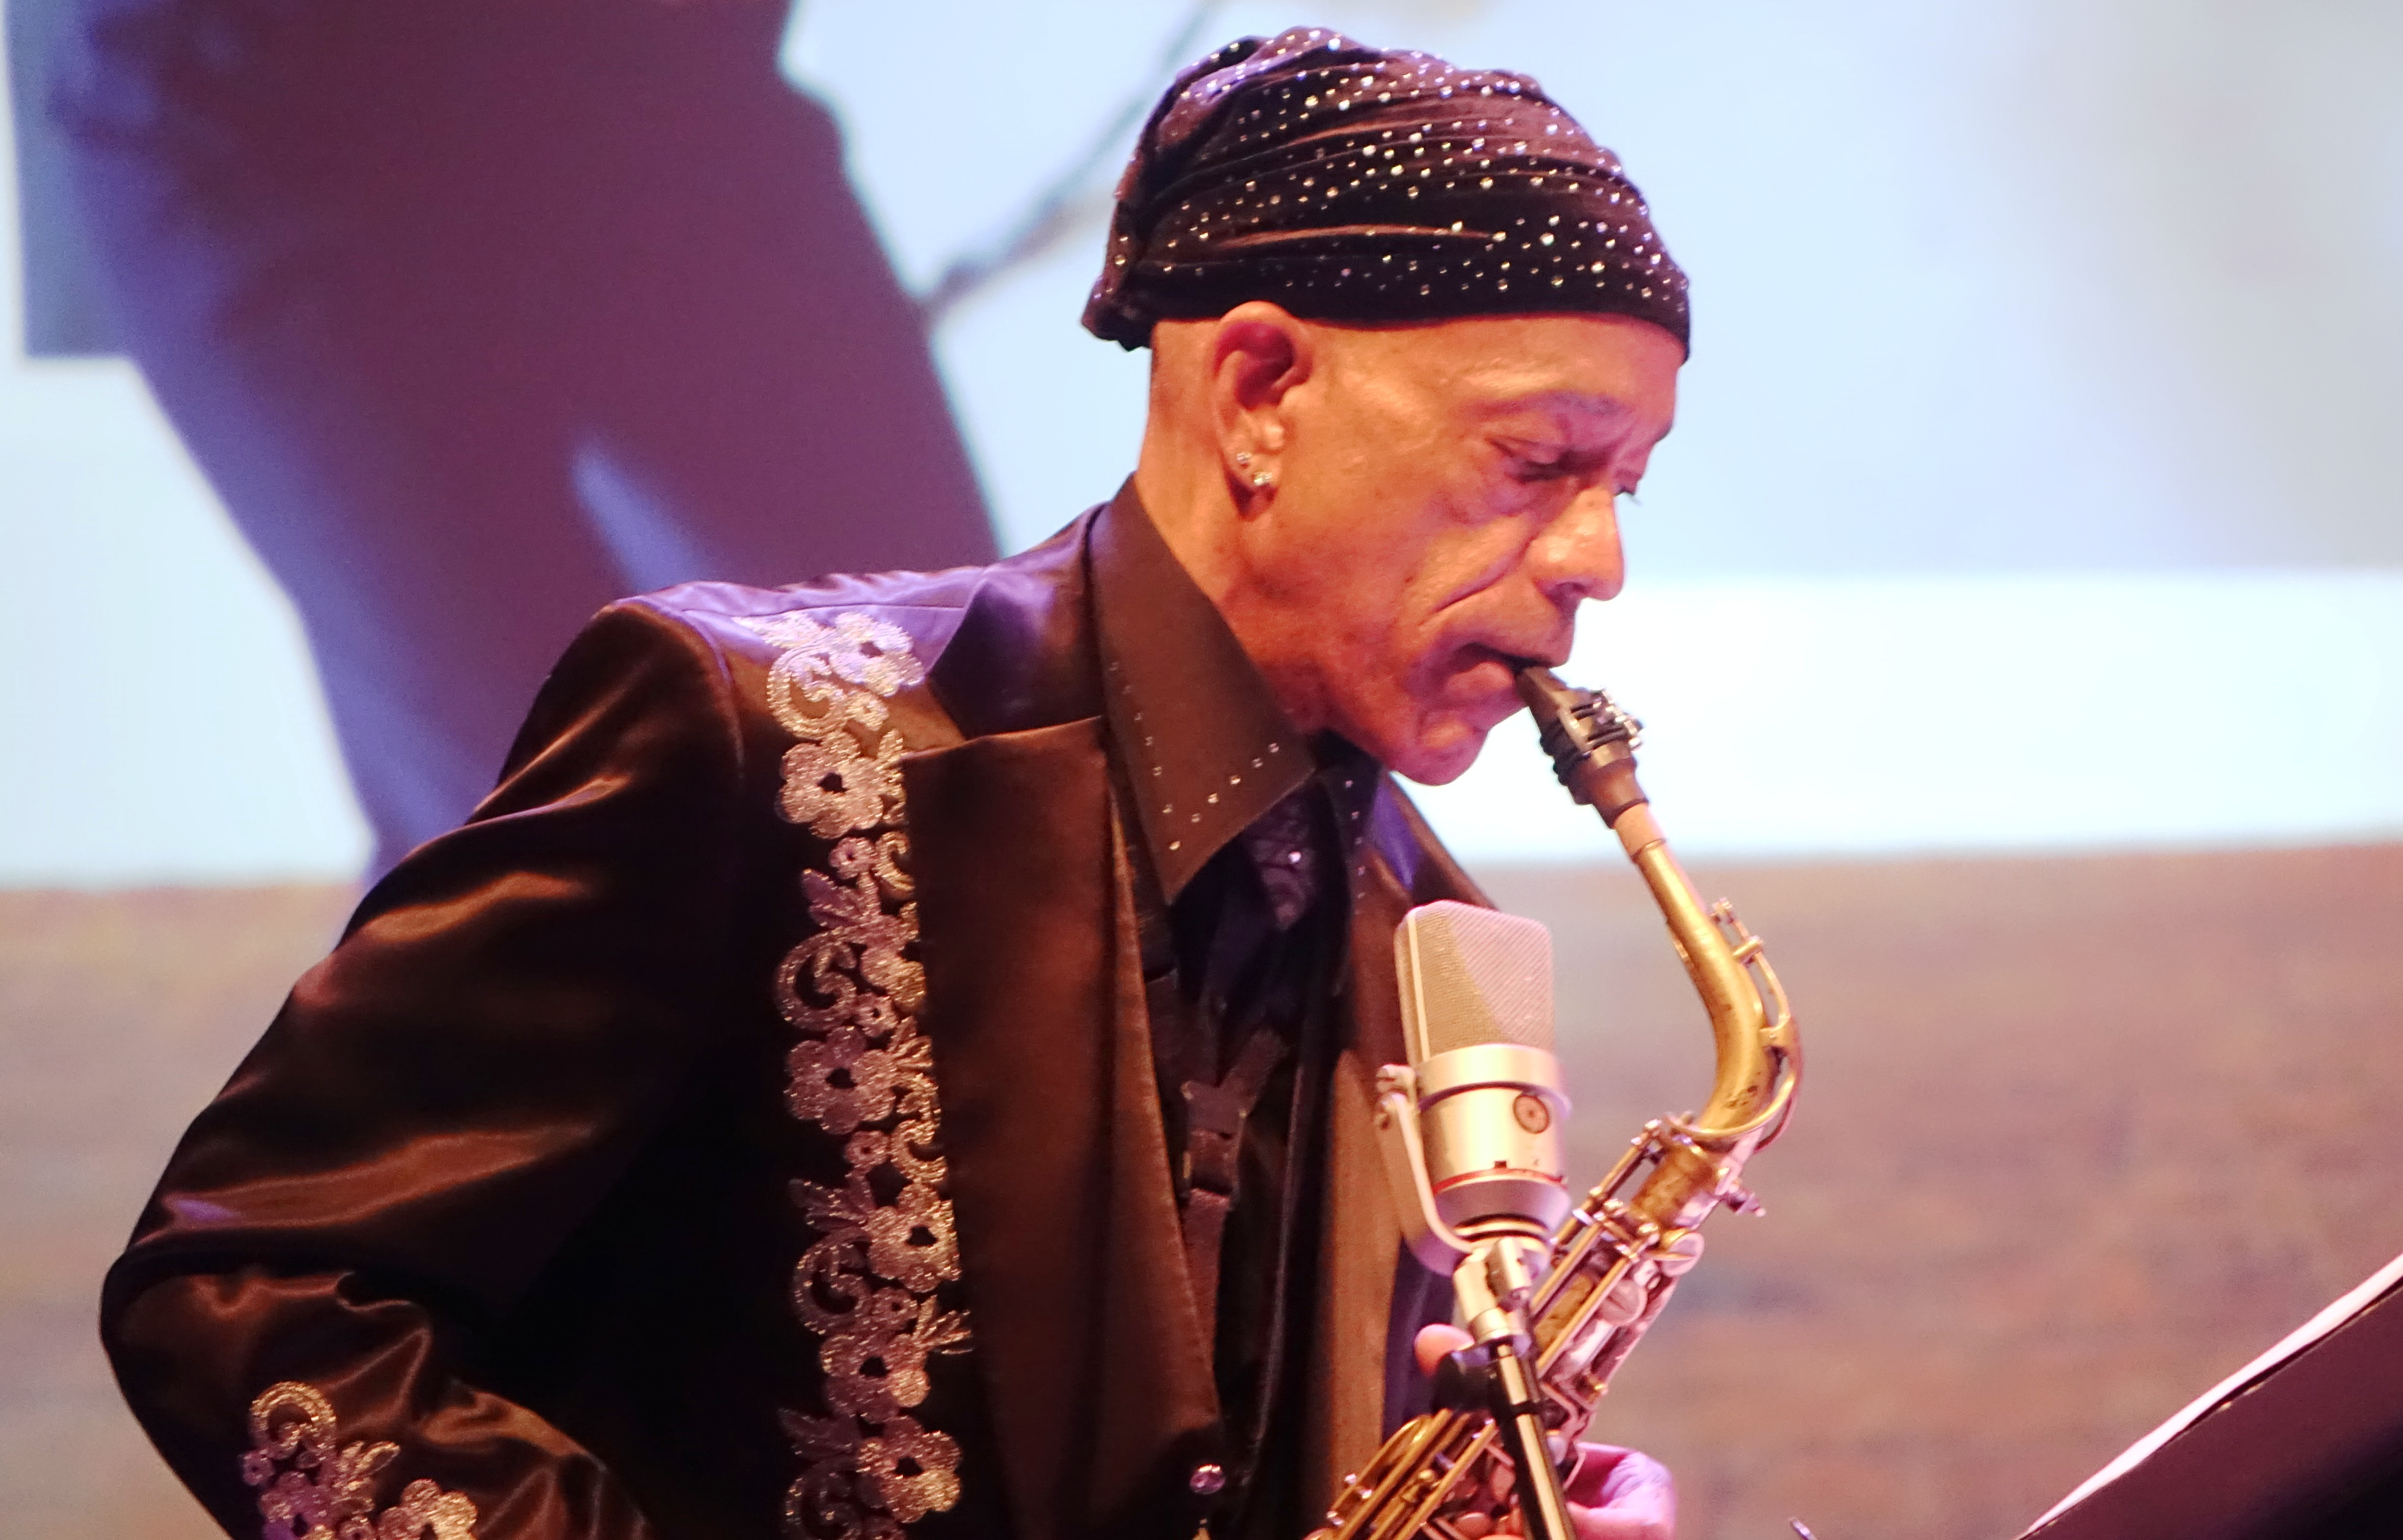 Idris Ackamoor at the Vision Festival in Roulette, Brooklyn in June 2019